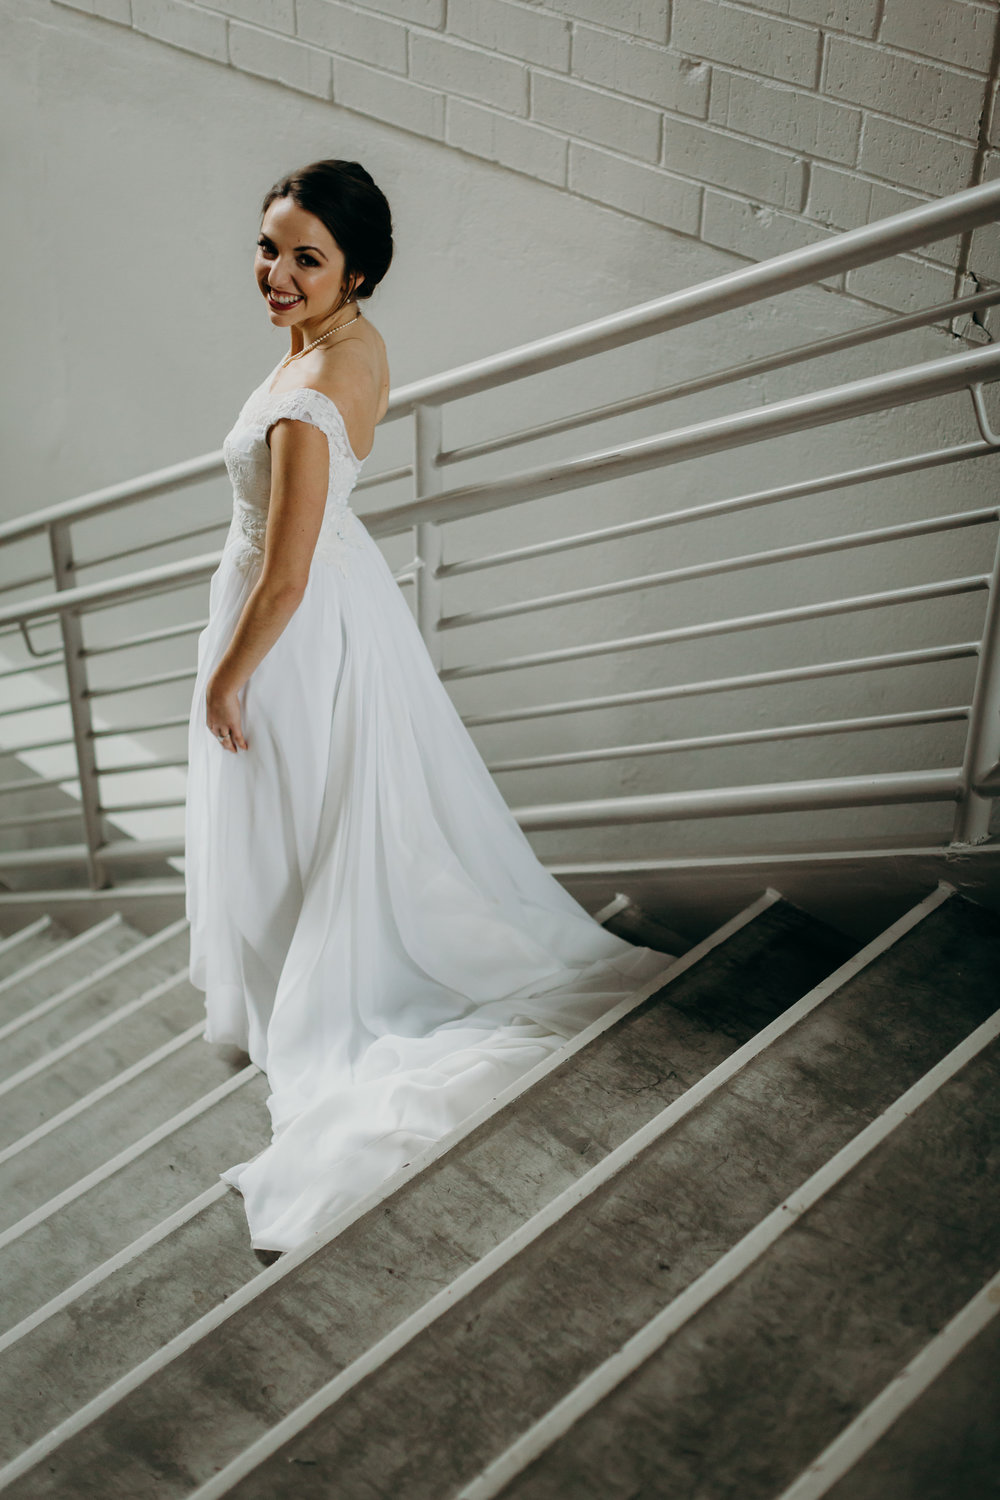 Gianna Keiko Atlanta NYC SF Wedding Engagement Photographer_Sneak Peek-11.jpg